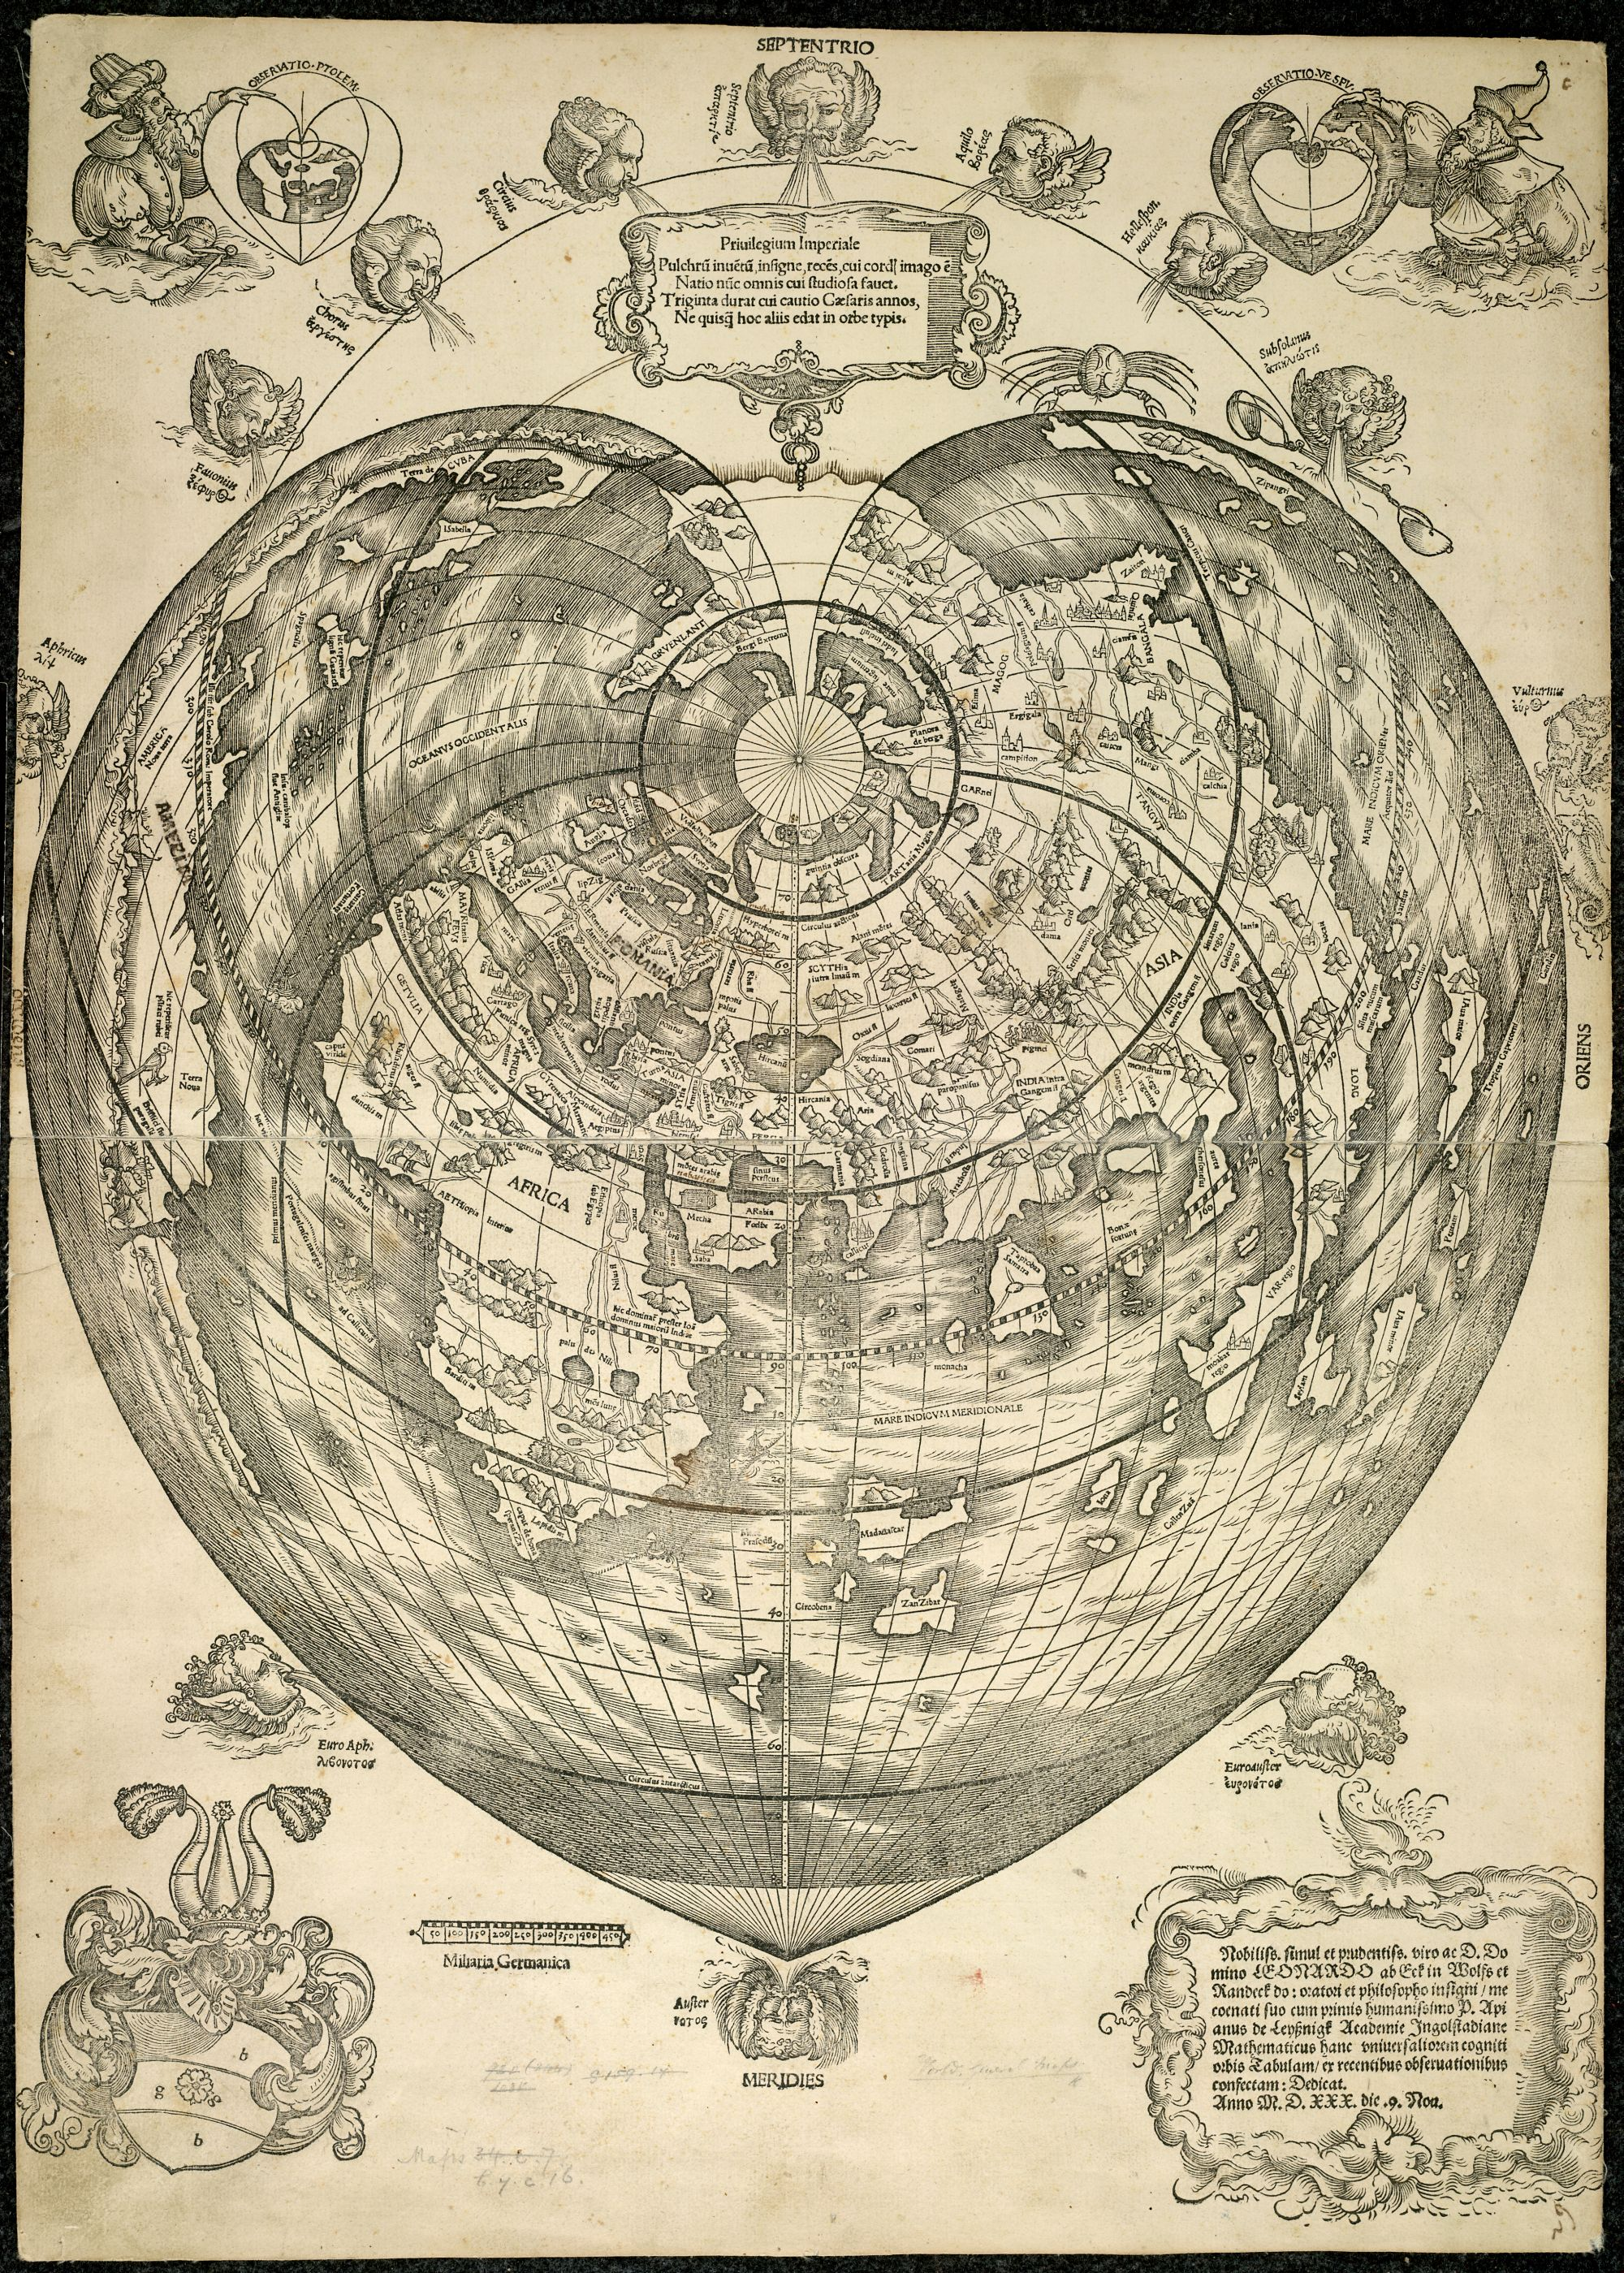 Peter Apian's printed map of the world in the shape of a heart